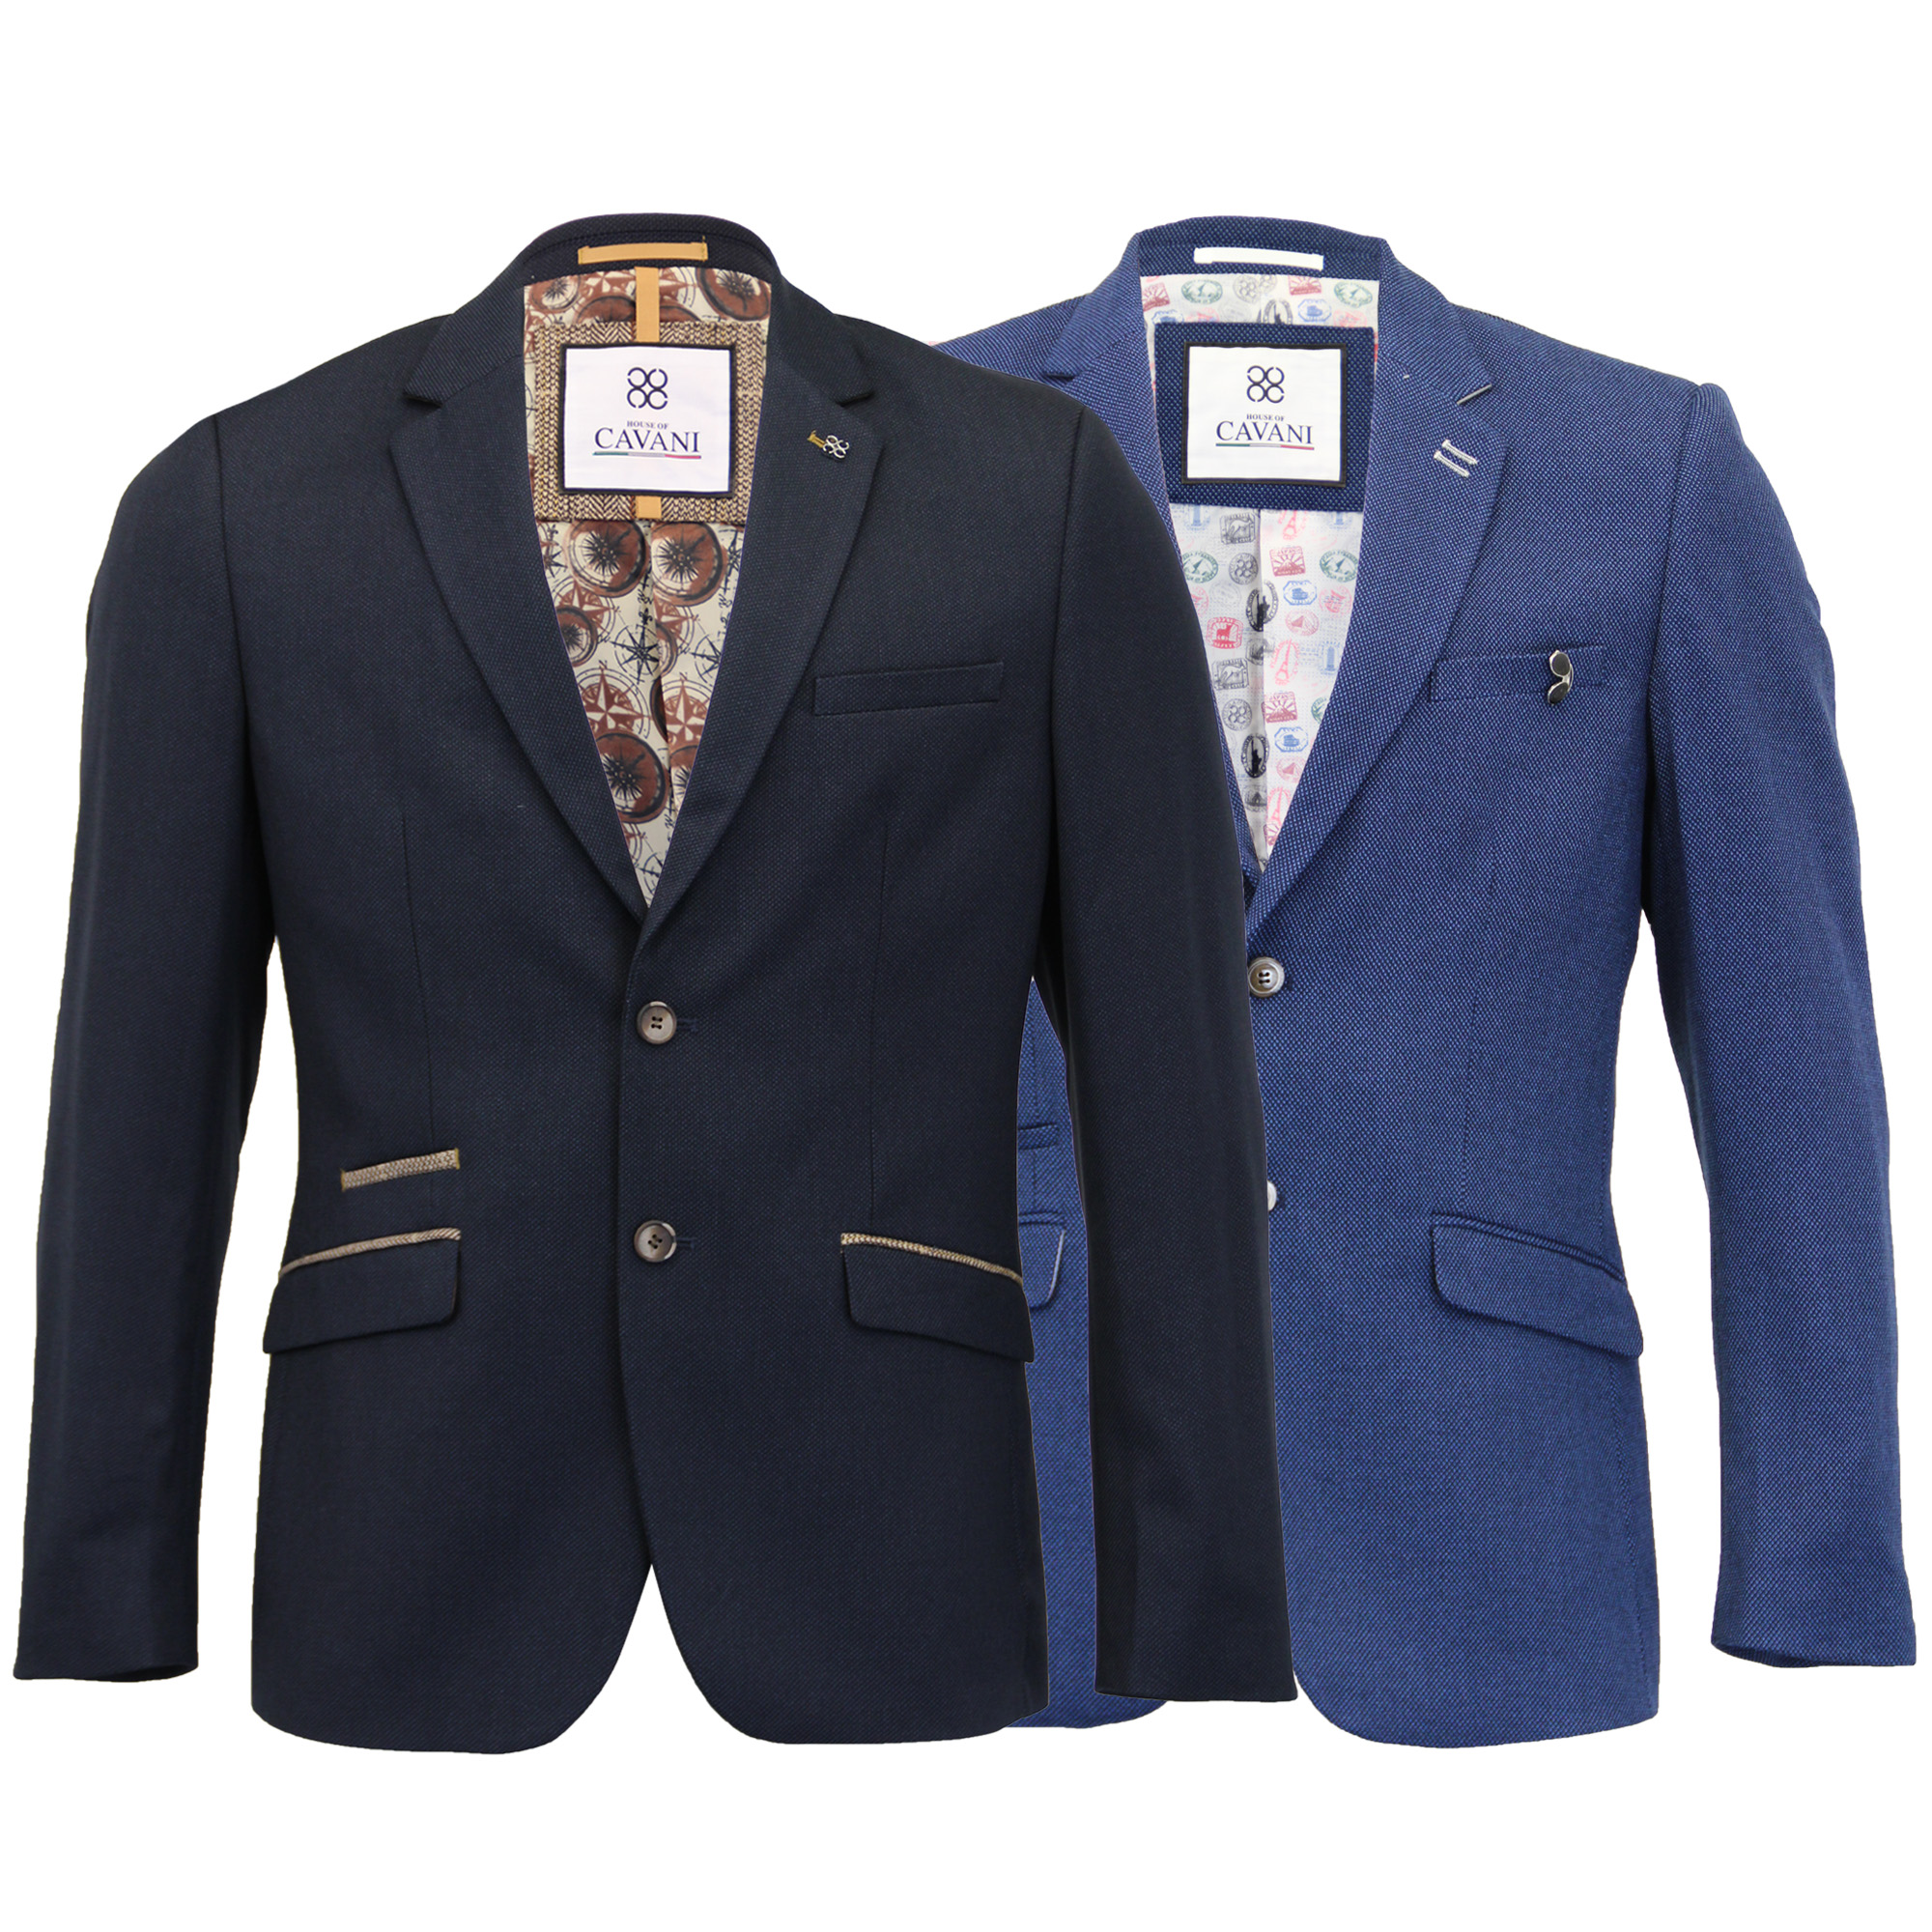 Mens-Blazer-Cavani-Coat-Dinner-Suit-Jacket-Button-Lined-Patches-Wedding-Formal thumbnail 3